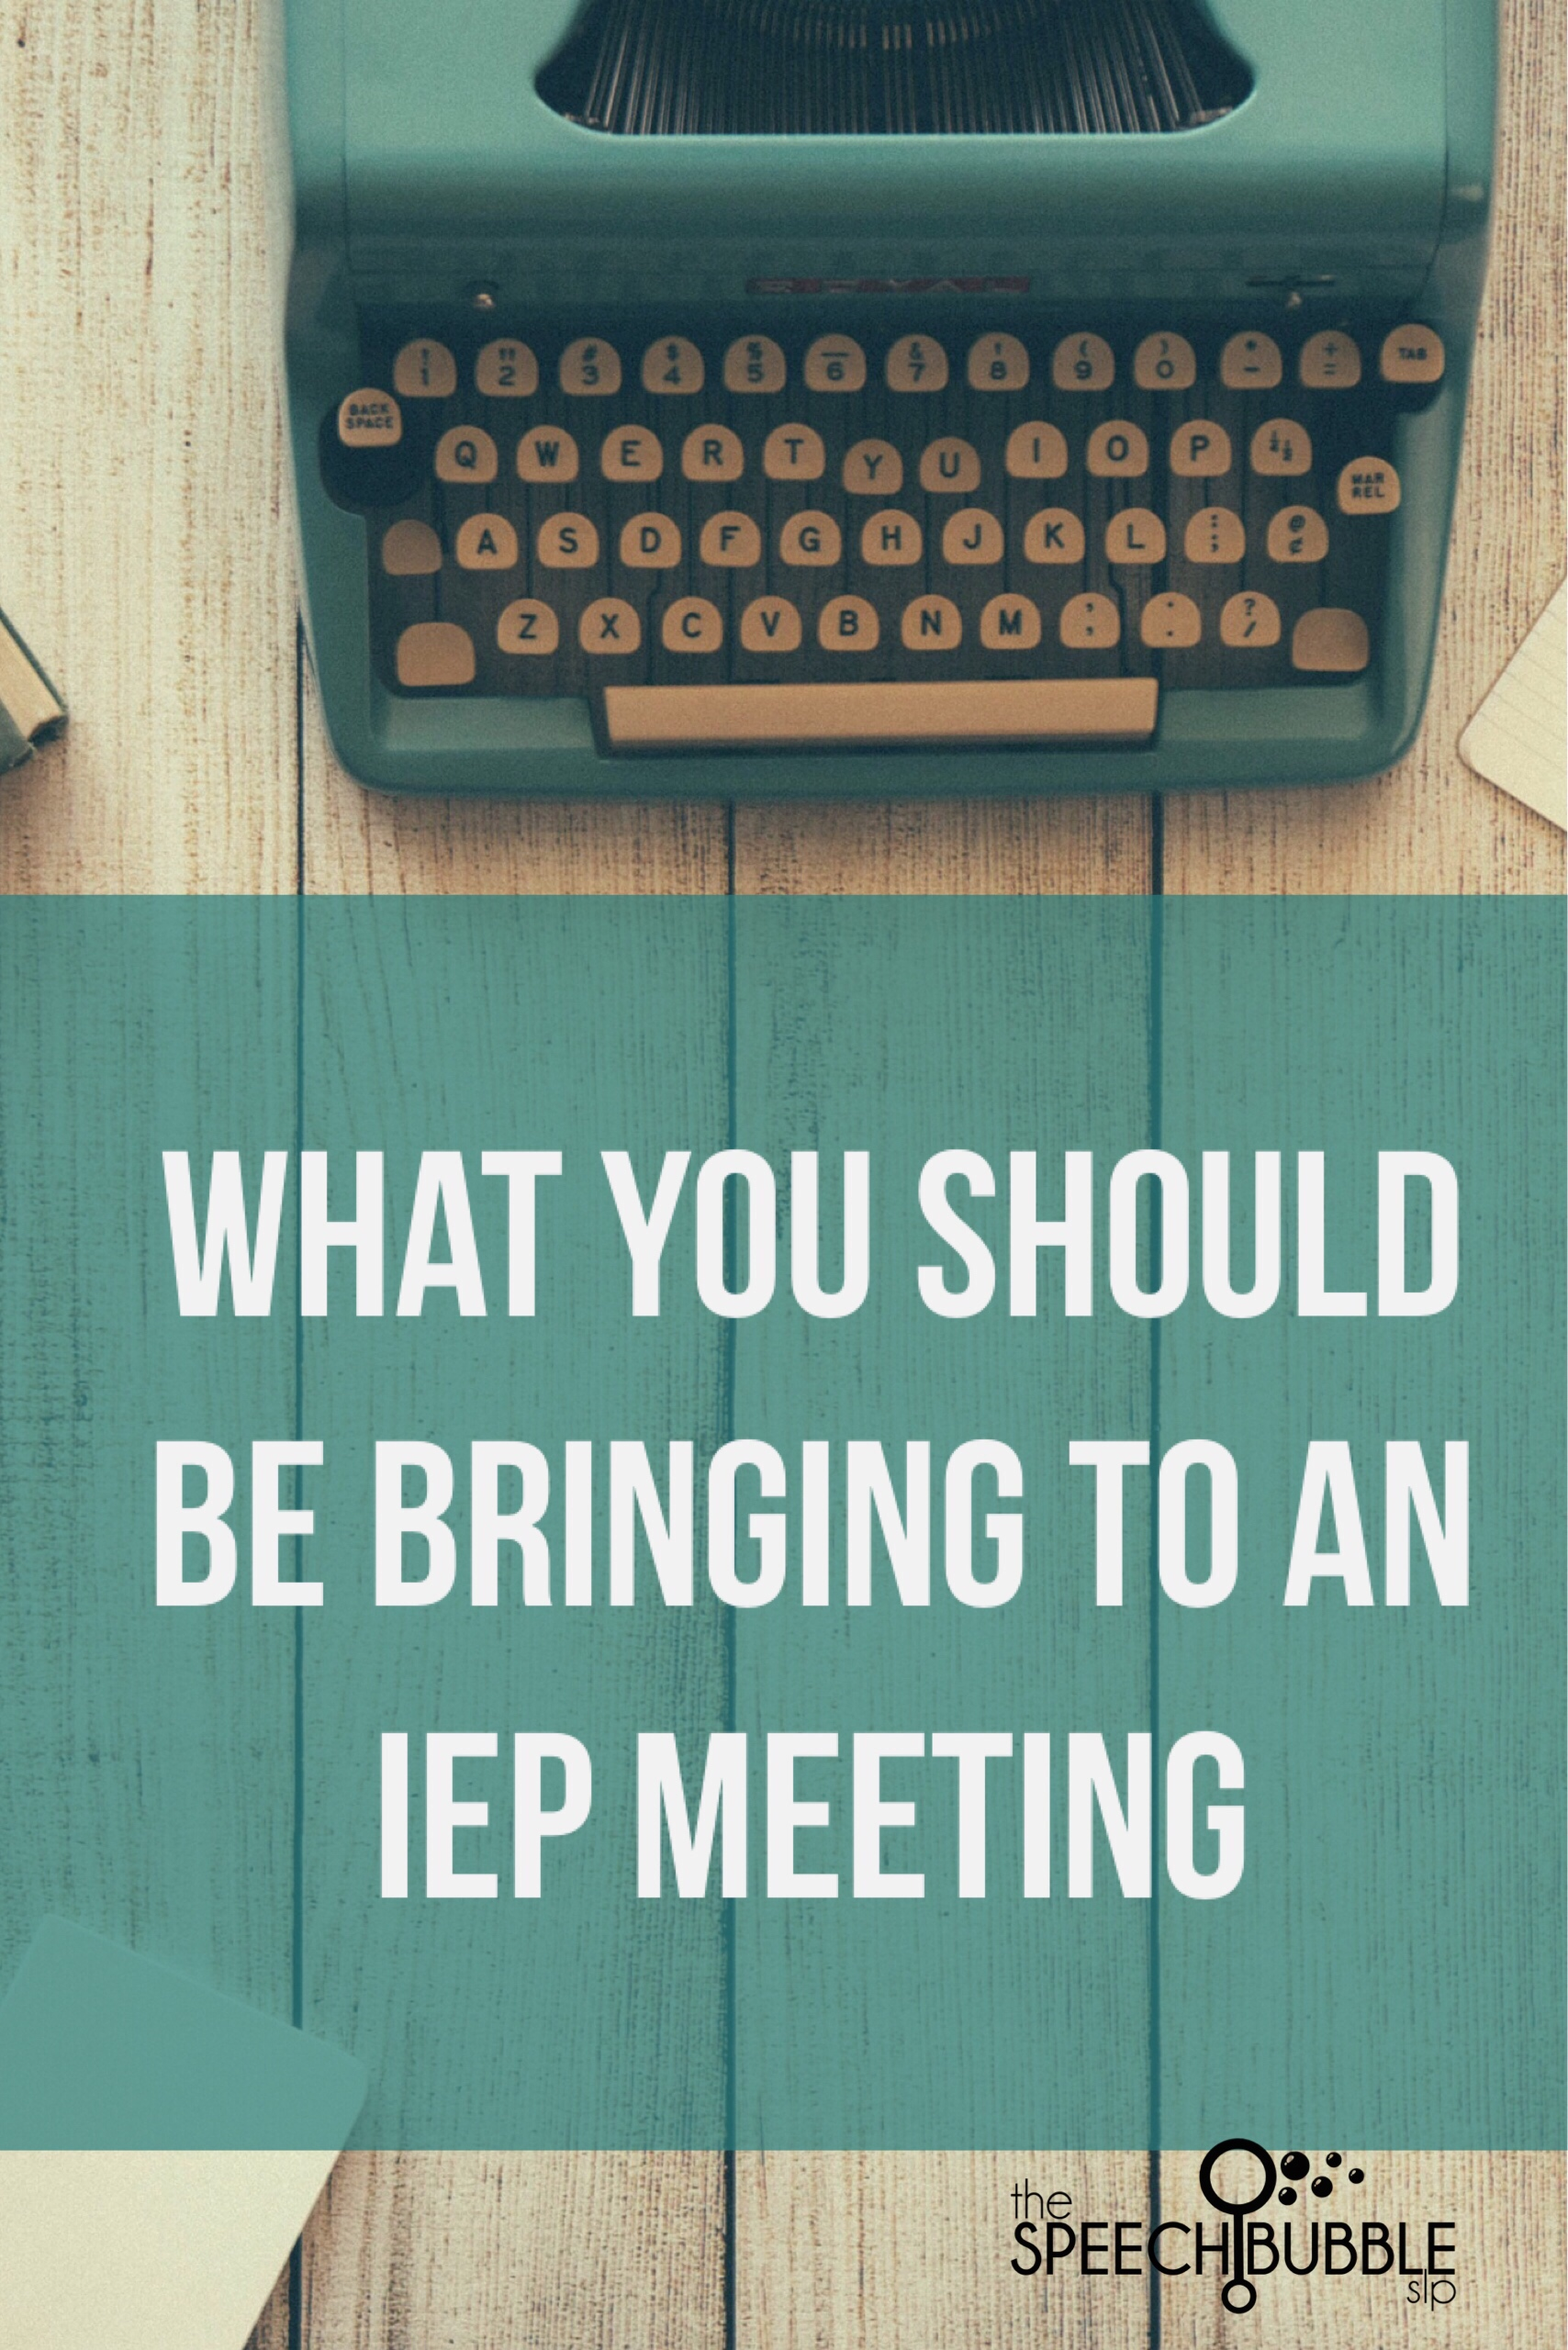 What To Bring to an IEP Meeting